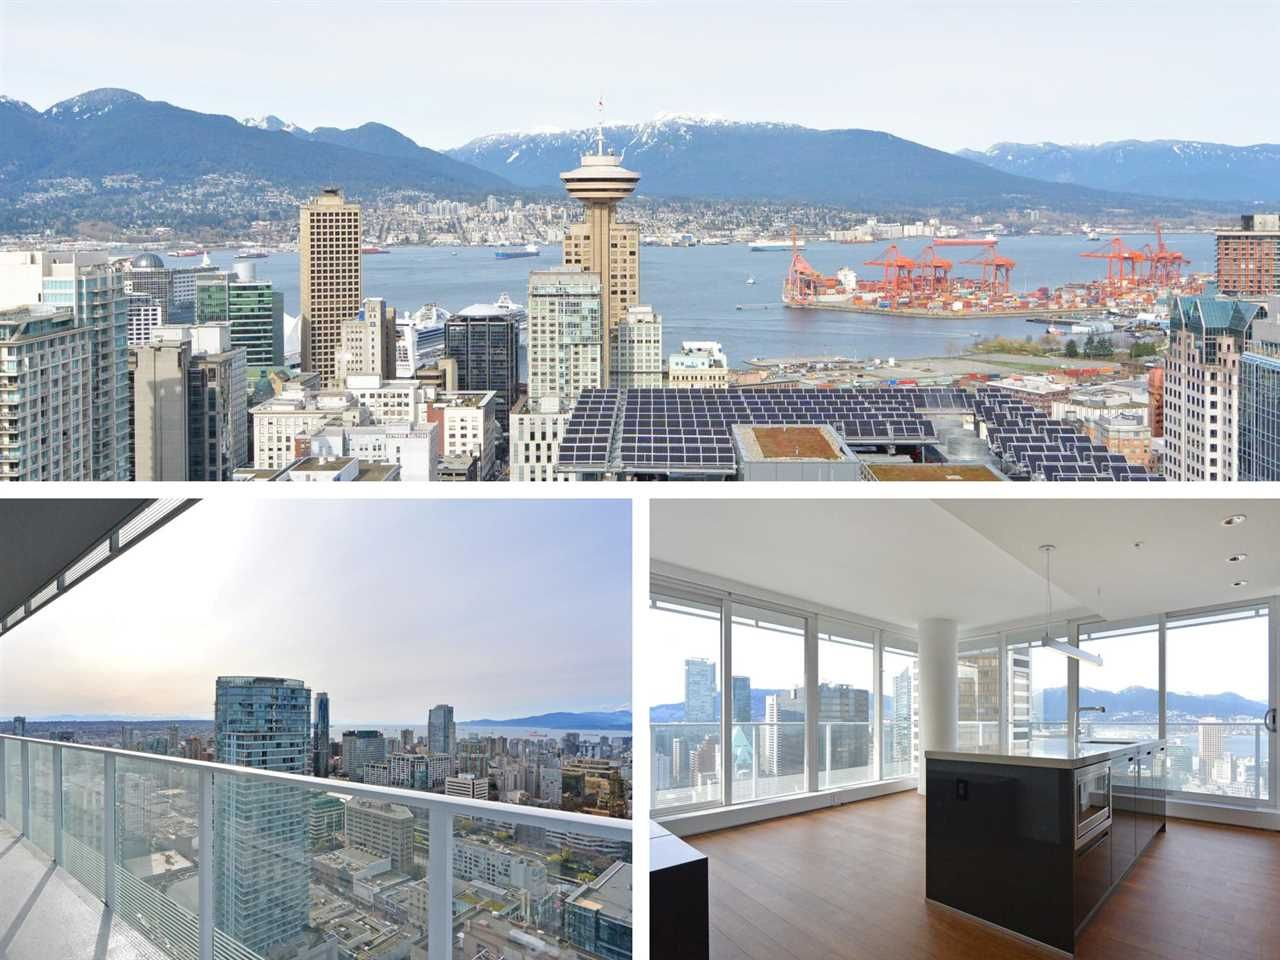 Main Photo: 4305 777 RICHARDS STREET in : Downtown VW Condo for sale (Vancouver West)  : MLS®# R2150629